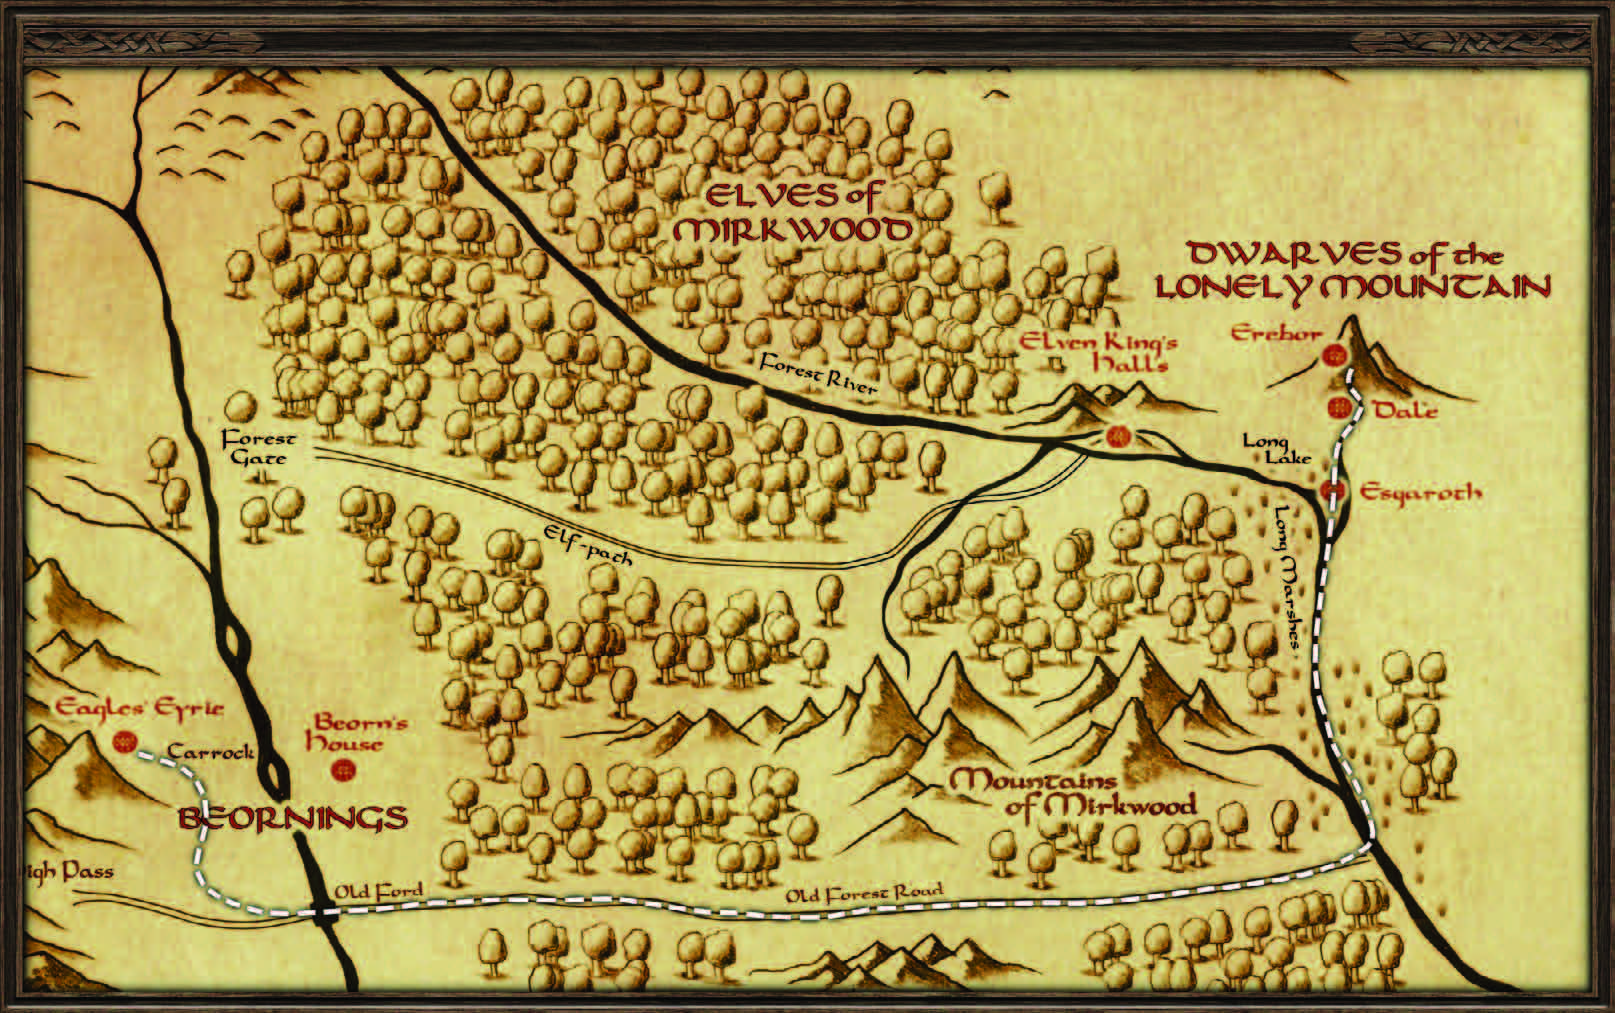 The dwarves map